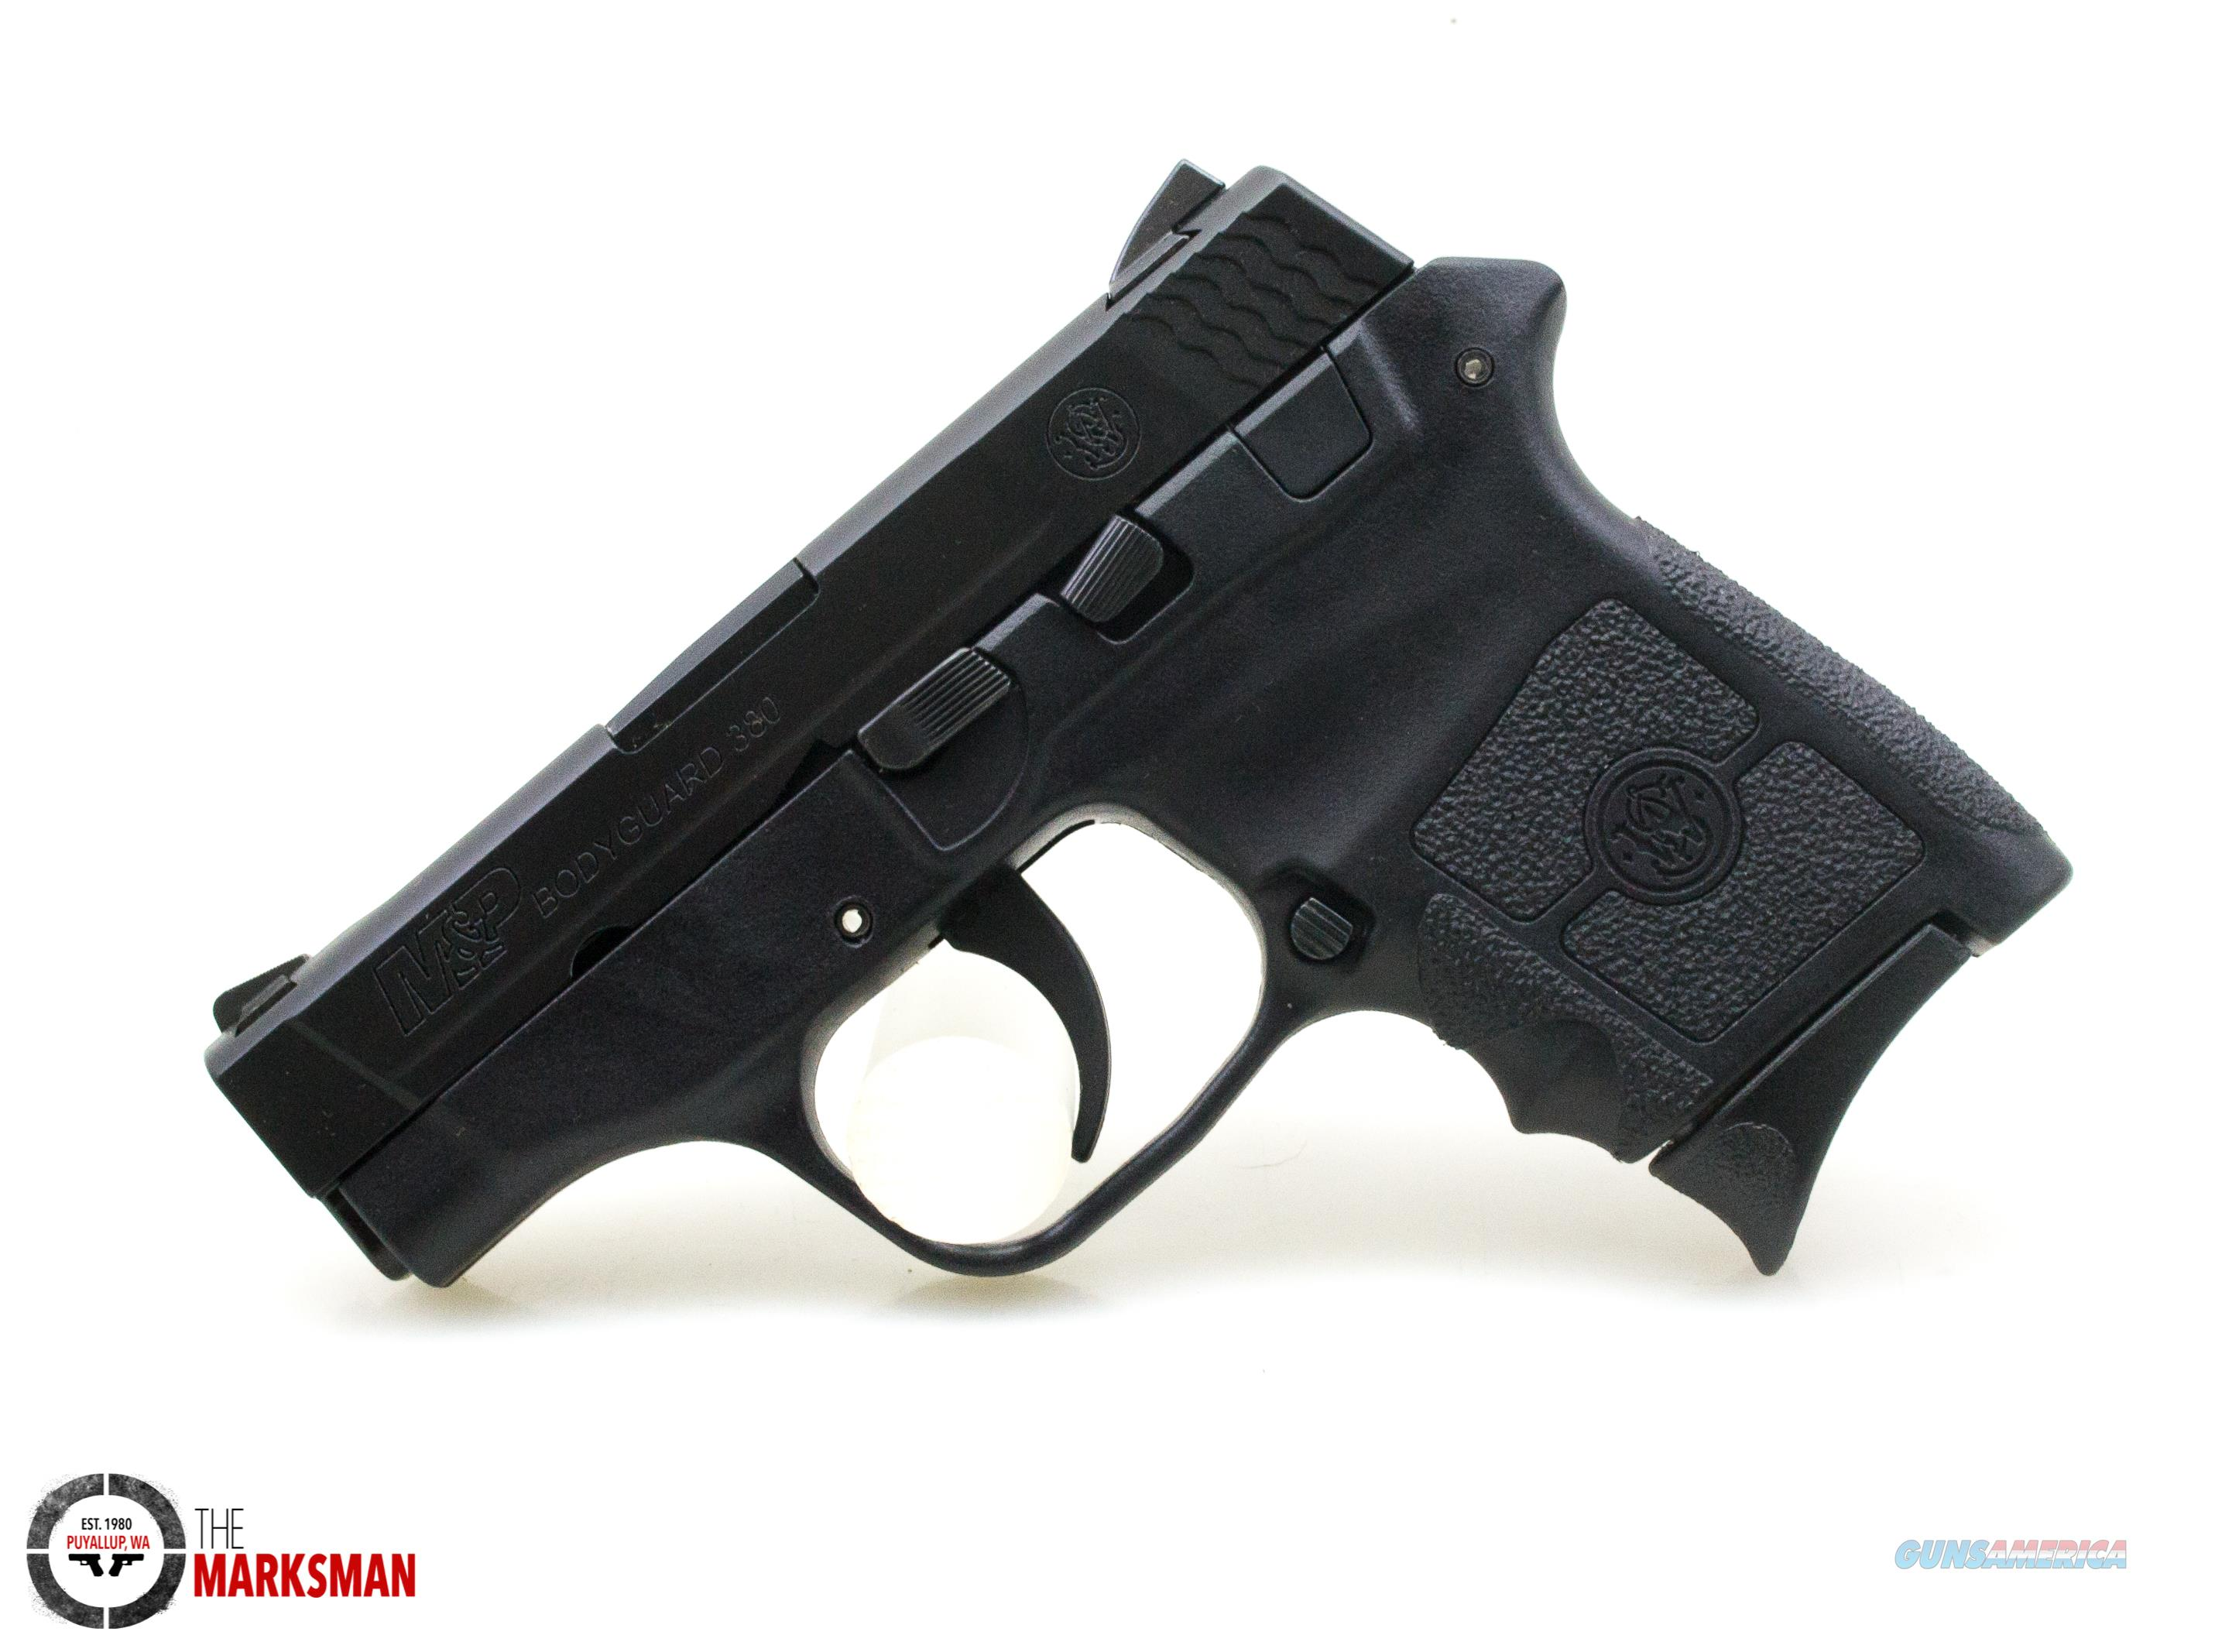 Smith and Wesson Bodyguard 380, .380 ACP, No Thumb Safety  Guns > Pistols > Smith & Wesson Pistols - Autos > Polymer Frame